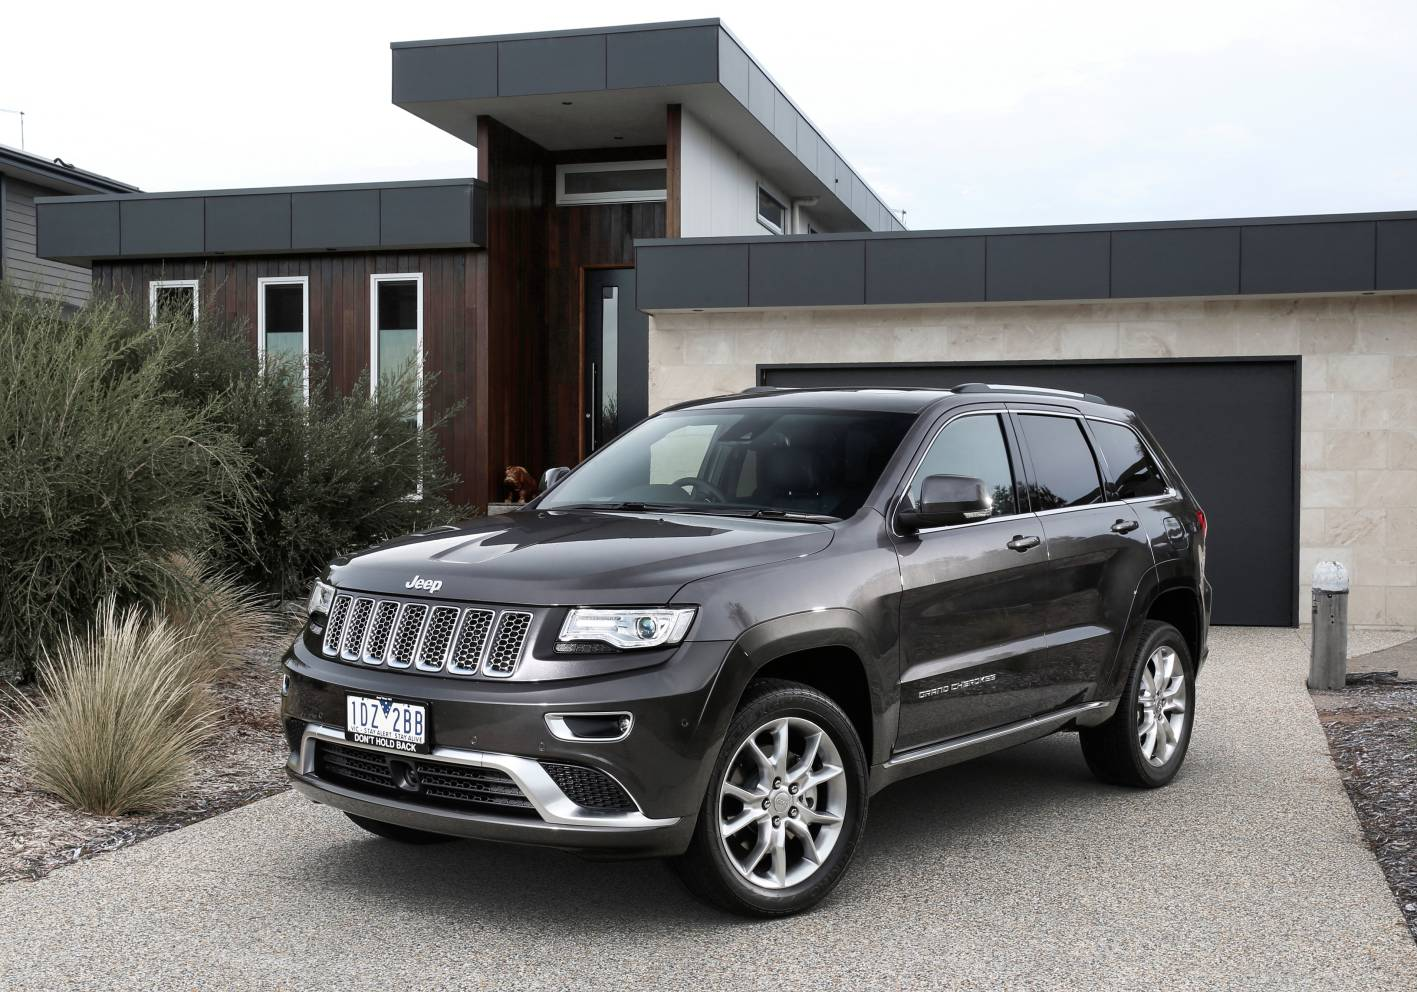 2015 jeep grand cherokee summit platinum now on sale photos caradvice. Black Bedroom Furniture Sets. Home Design Ideas